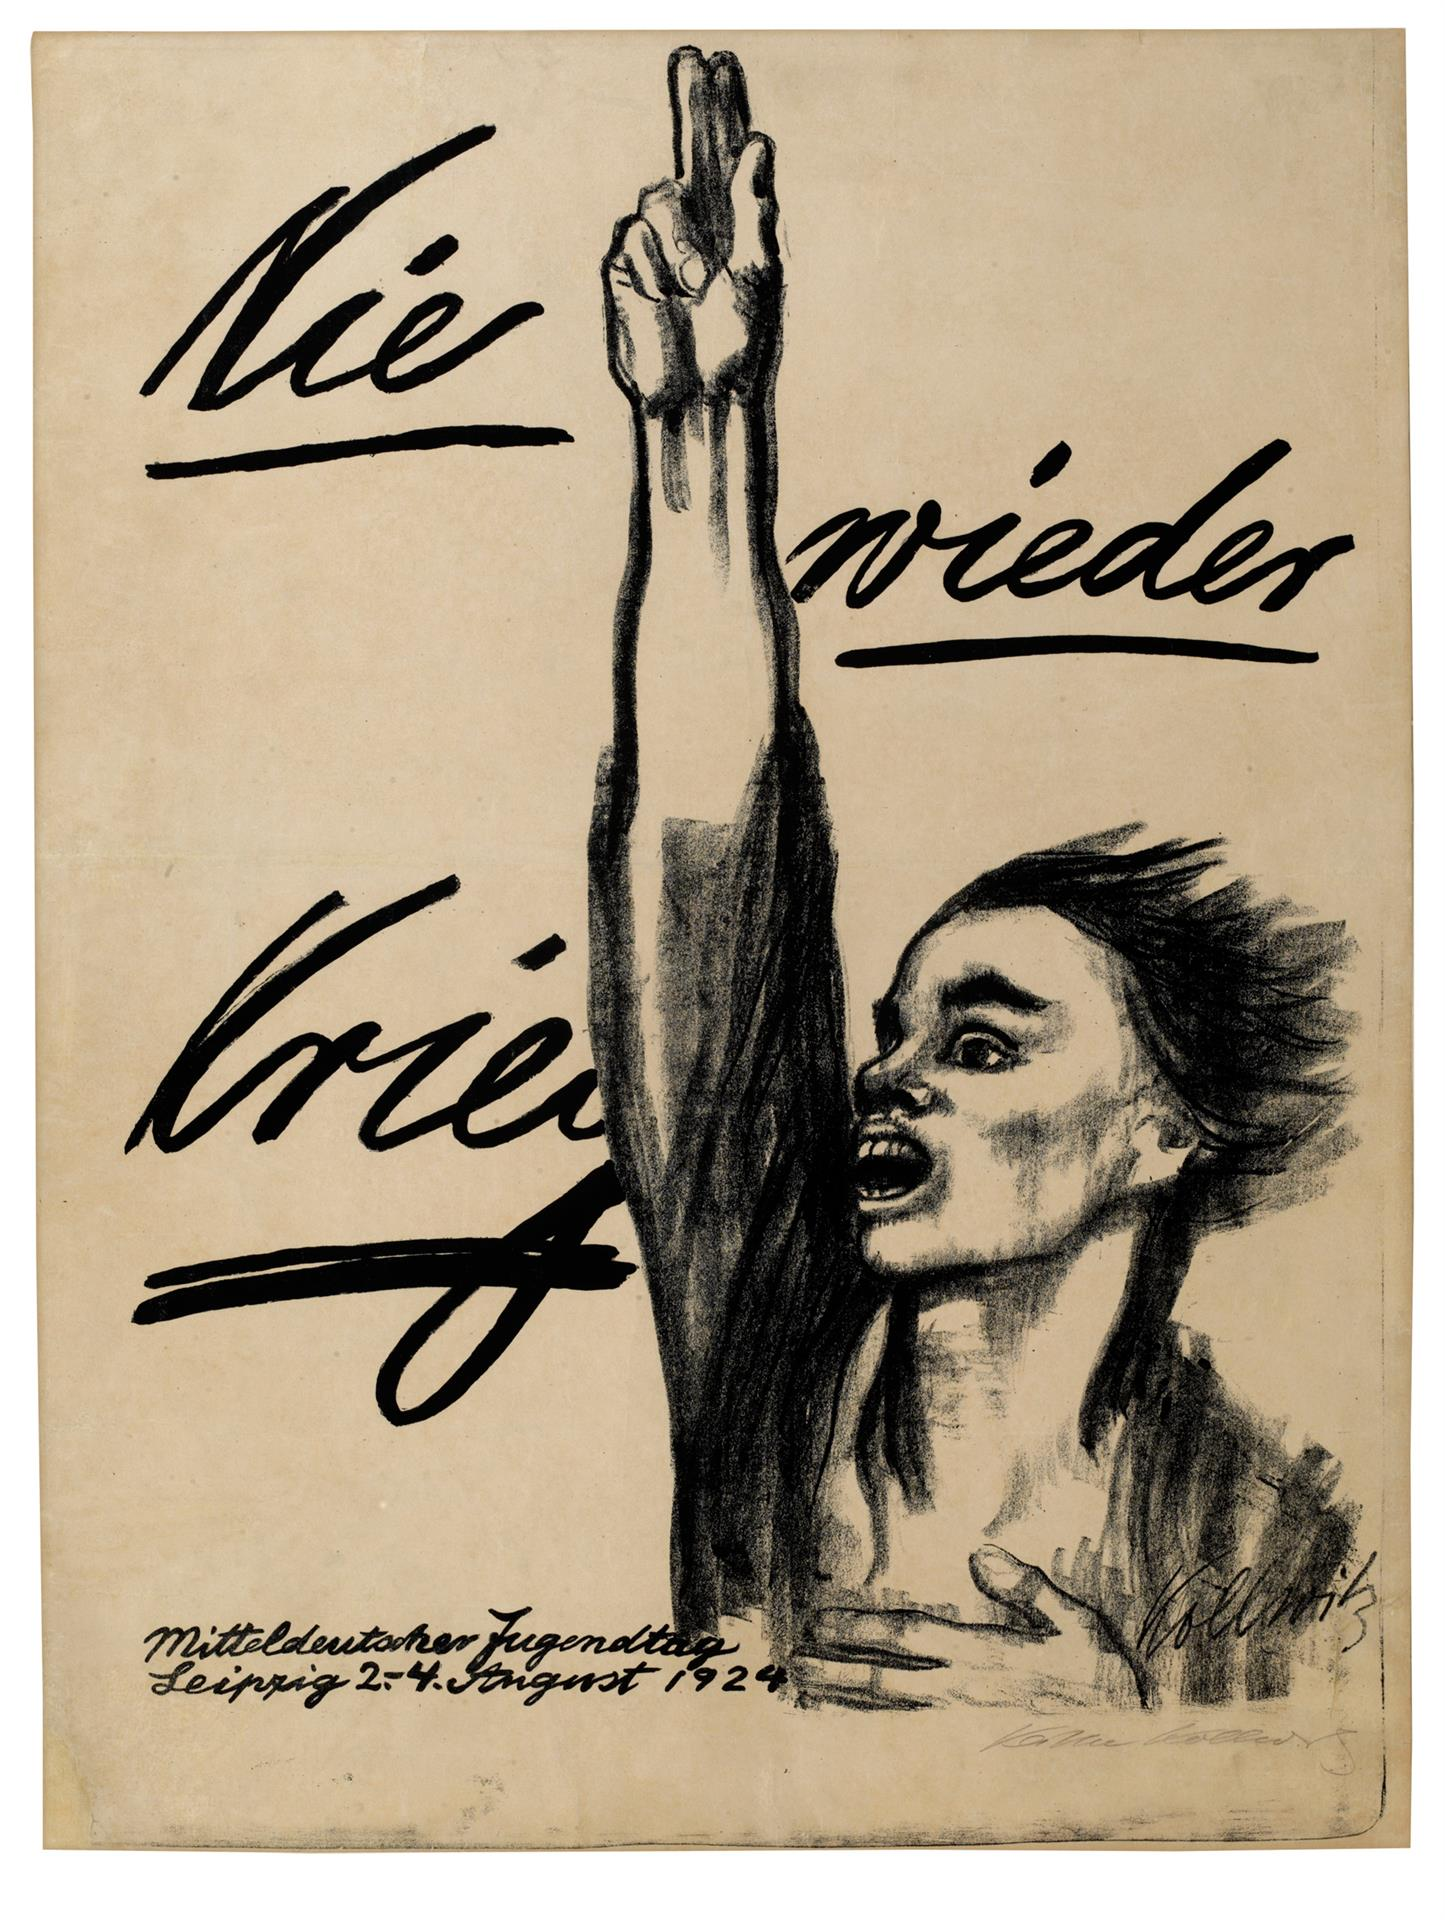 Käthe Kollwitz, Poster »Never Again War«, 1924, crayon and brush lithograph (transfer), Kn 205 III b, Cologne Kollwitz Collection © Käthe Kollwitz Museum Köln